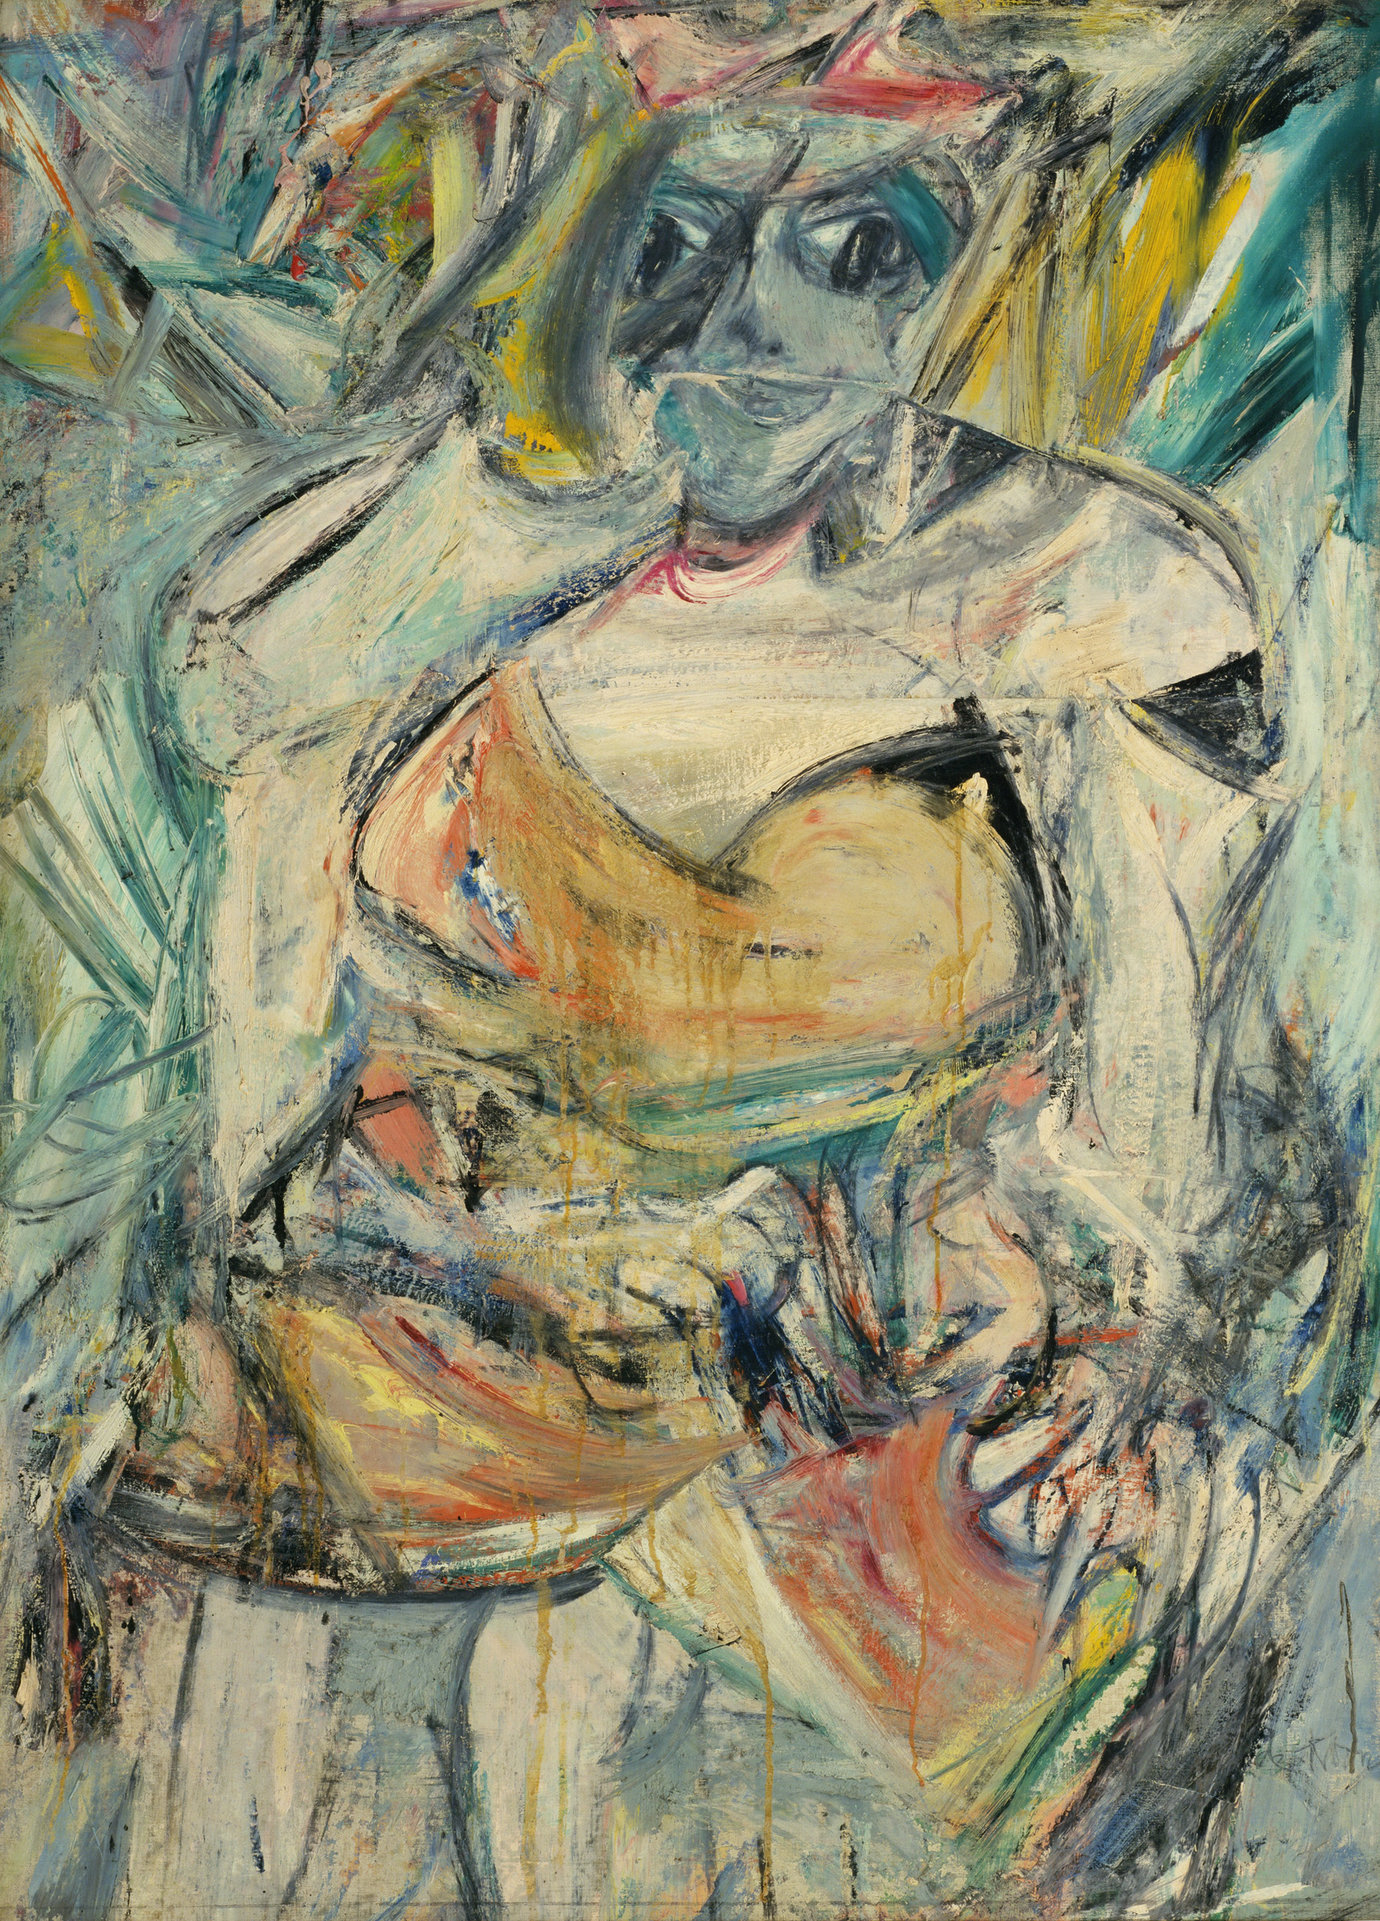 ", 1952. Oil on canvas, 59"" x 43"" (149.9 cm x 109.2 cm)."